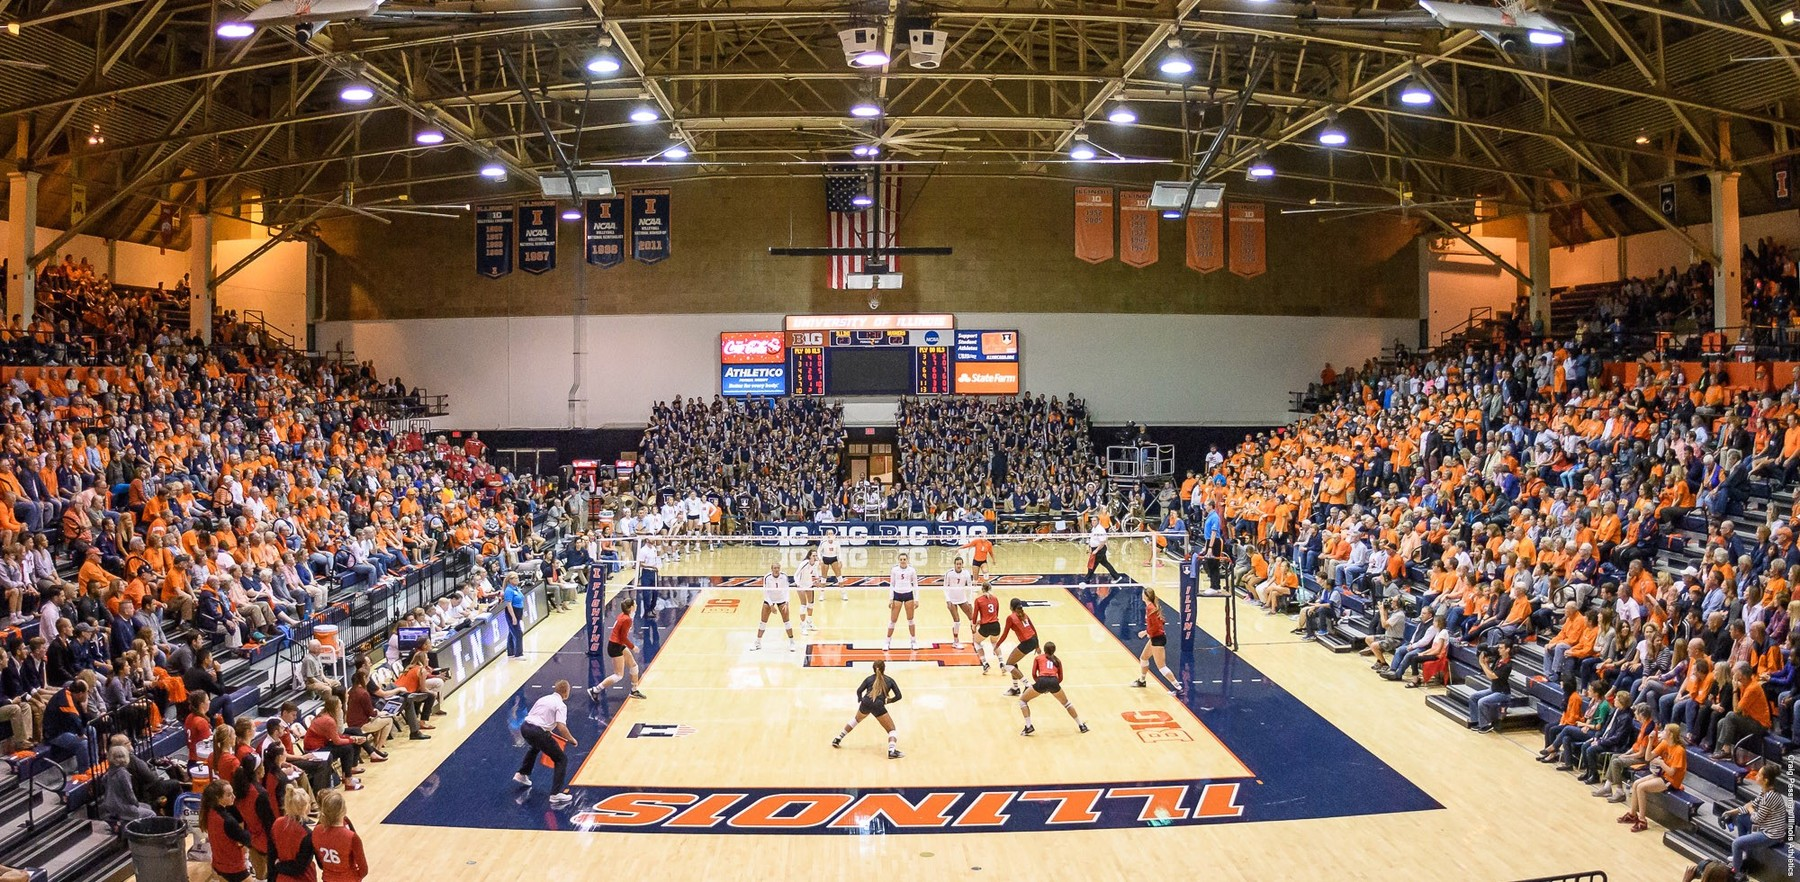 Huff Hall during an Illini Volleyball game